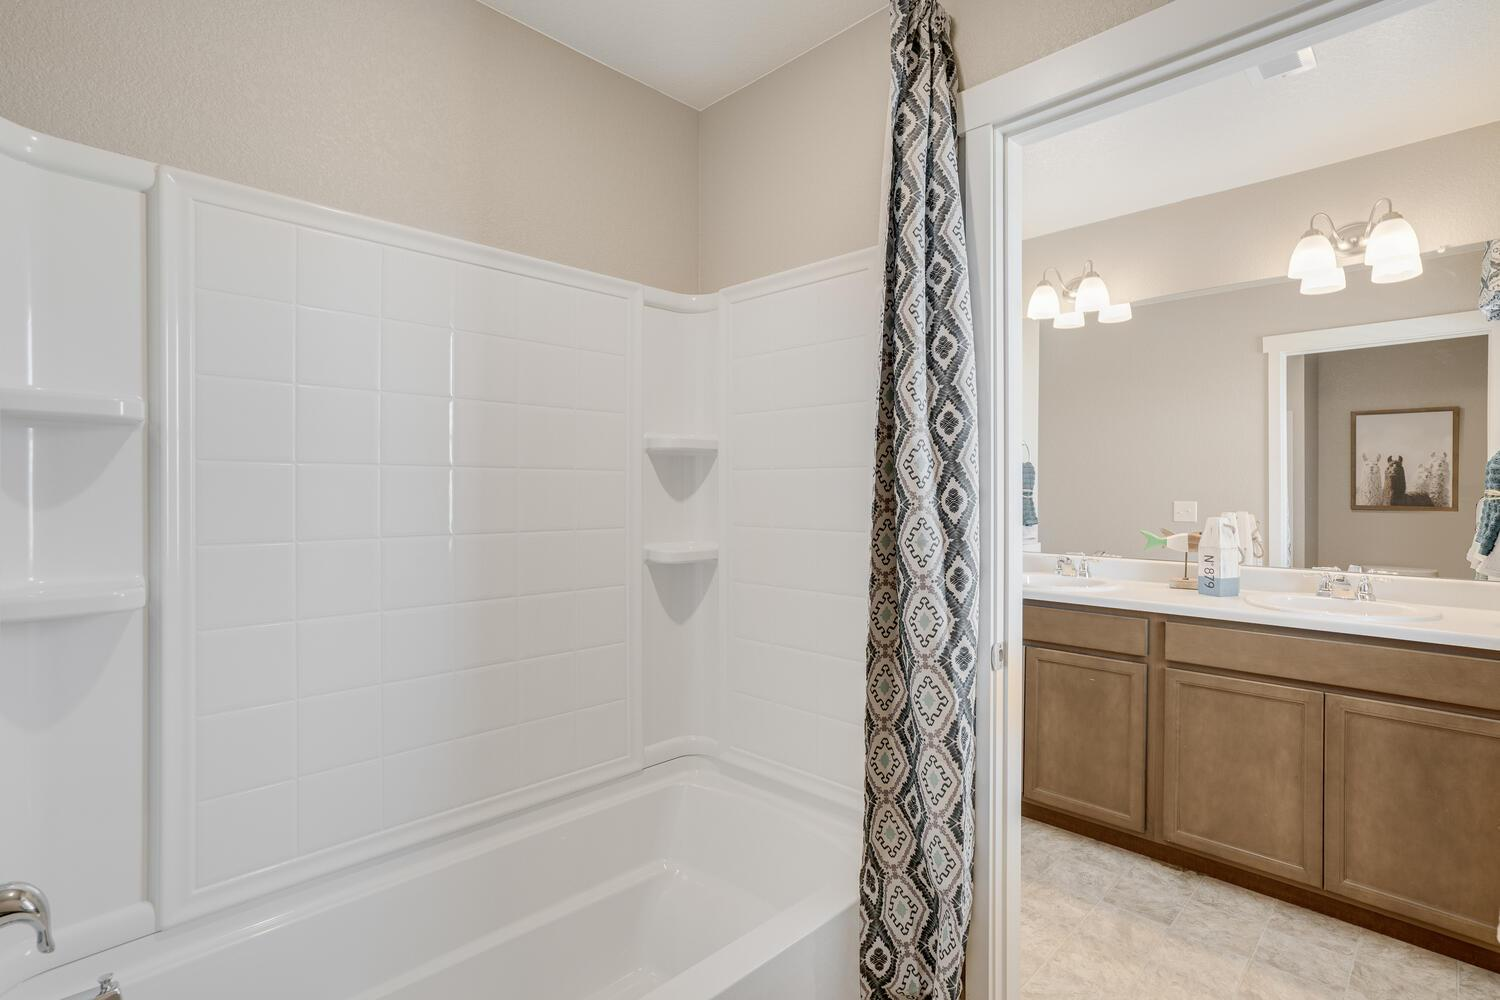 Bathroom featured in the HENLEY By D.R. Horton in Greeley, CO